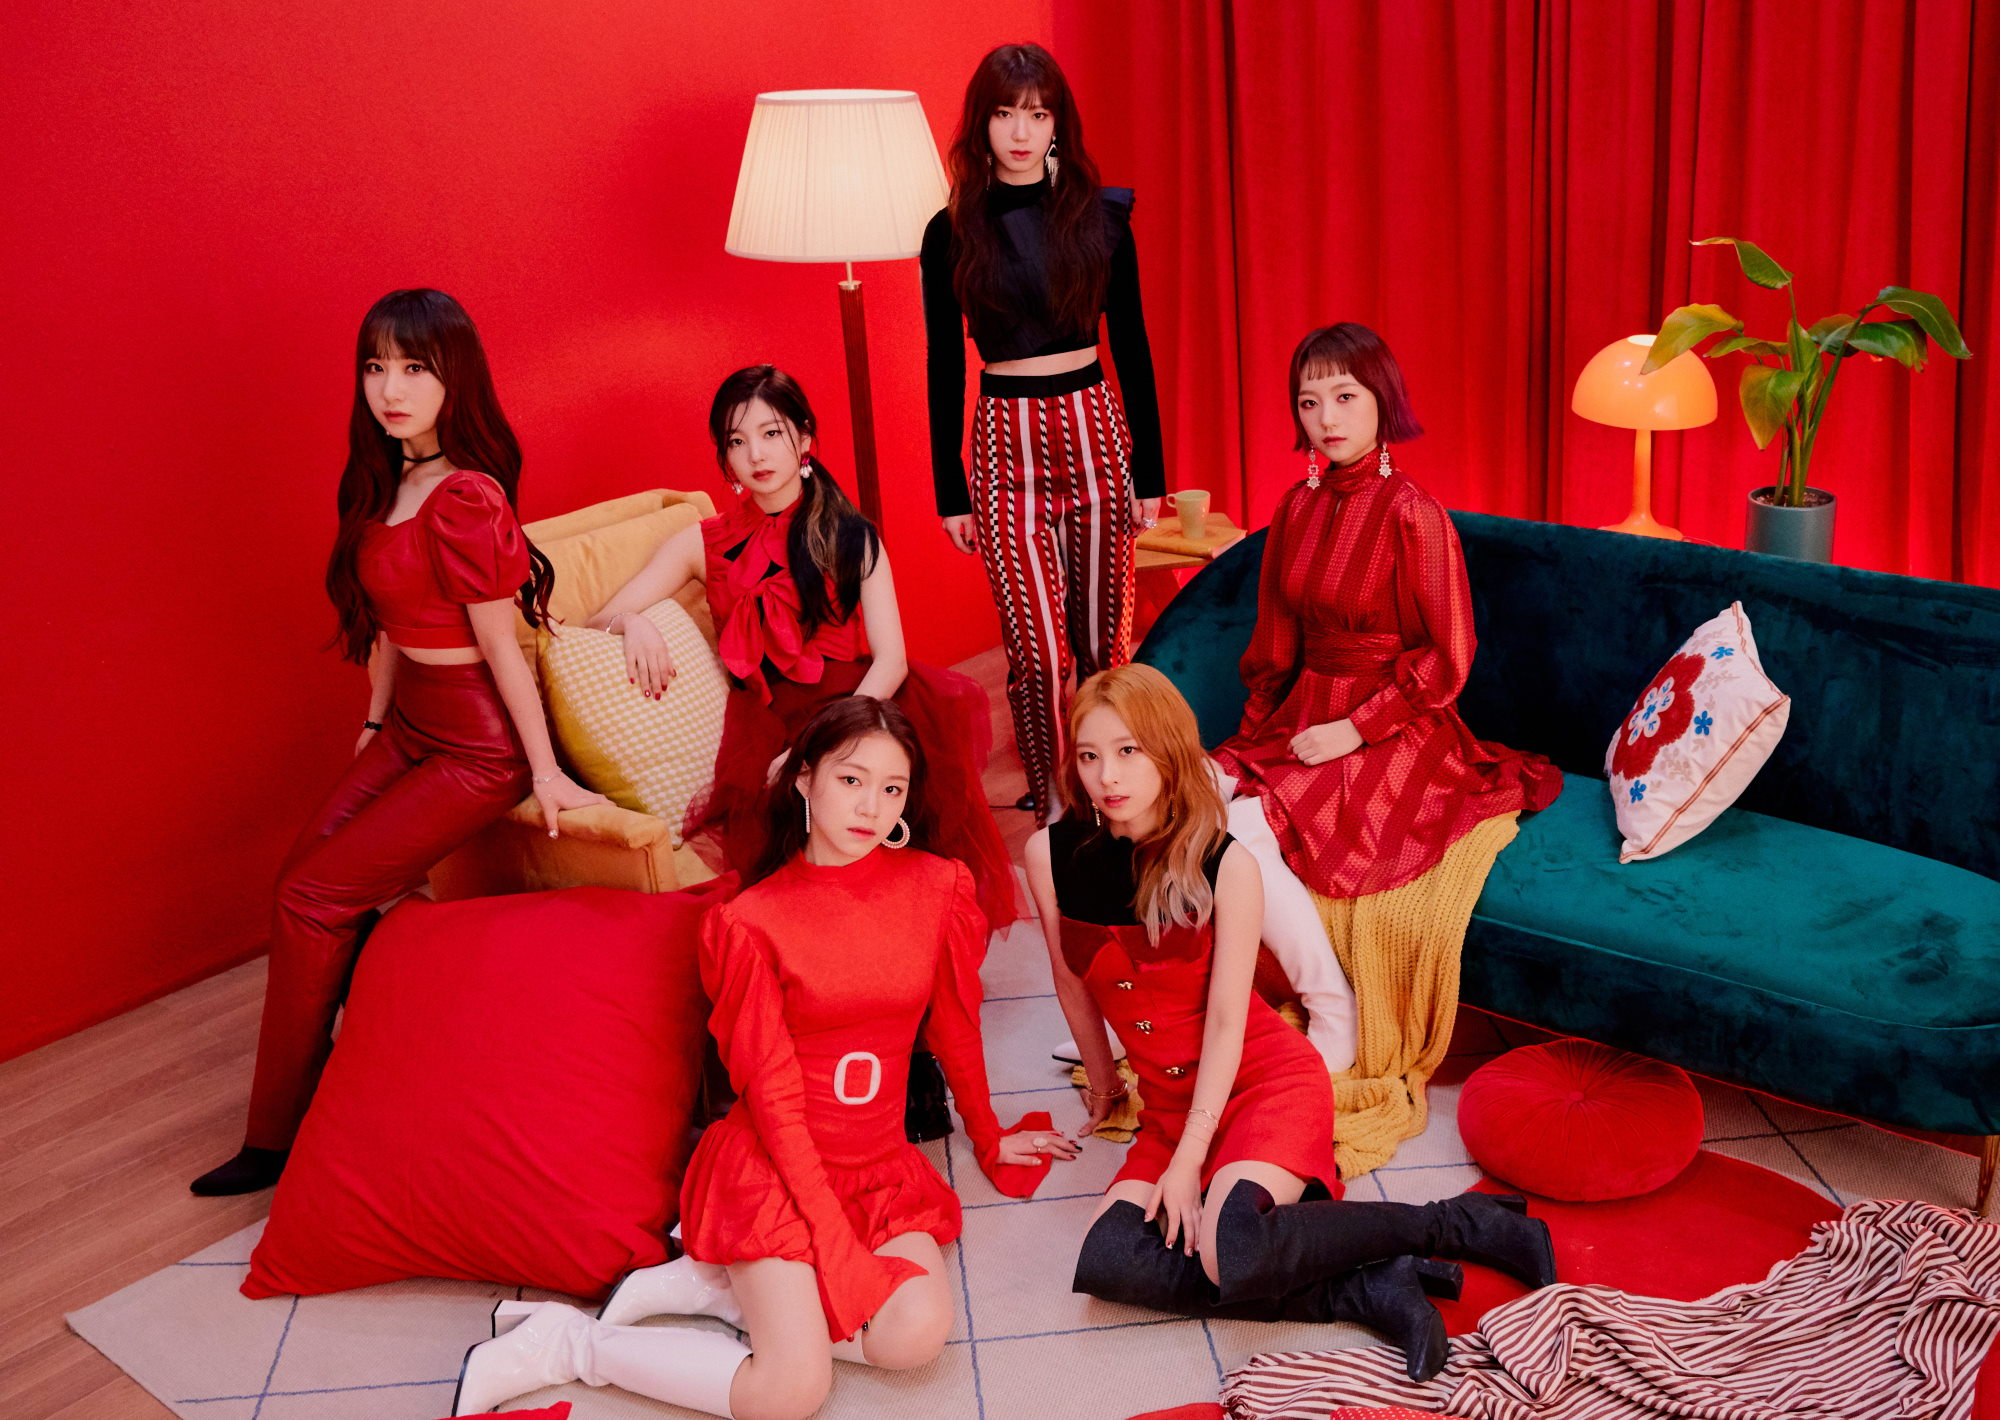 Rocket Punch members Red Punch